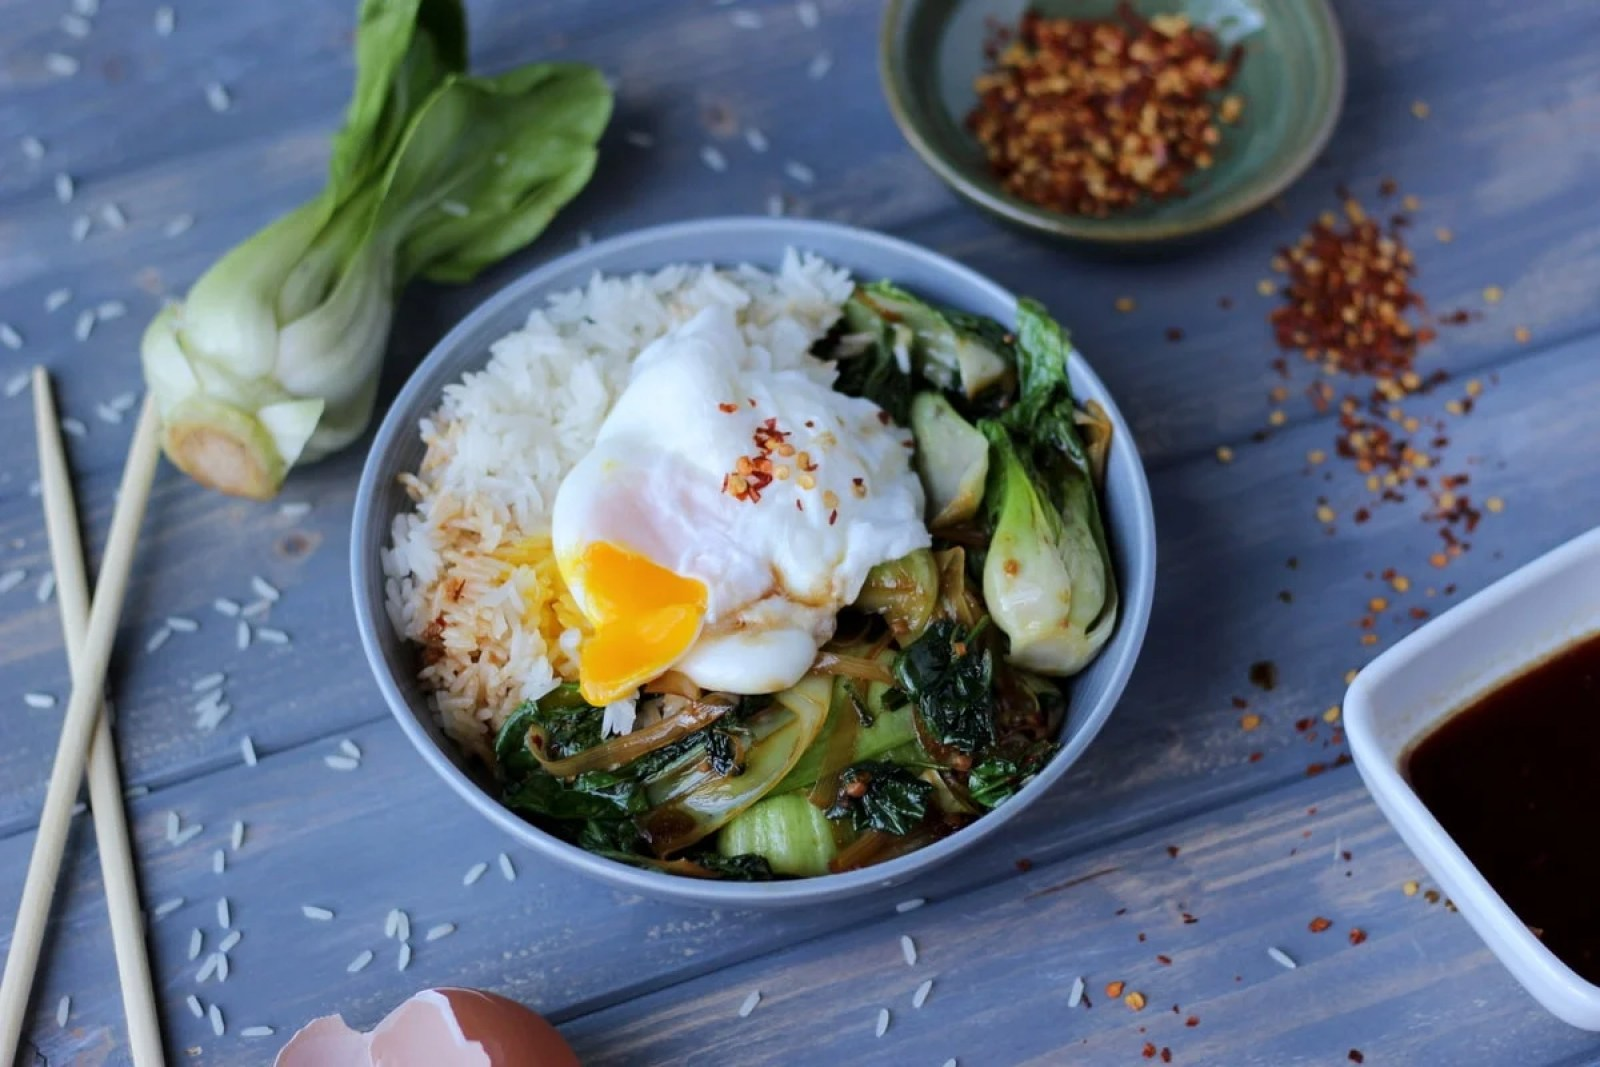 Vegetarian Rice Bowl with Braised Baby Bok Choy, Leeks and Spinach with Poached Egg and Red Pepper Flakes - thewoodenskillet.com